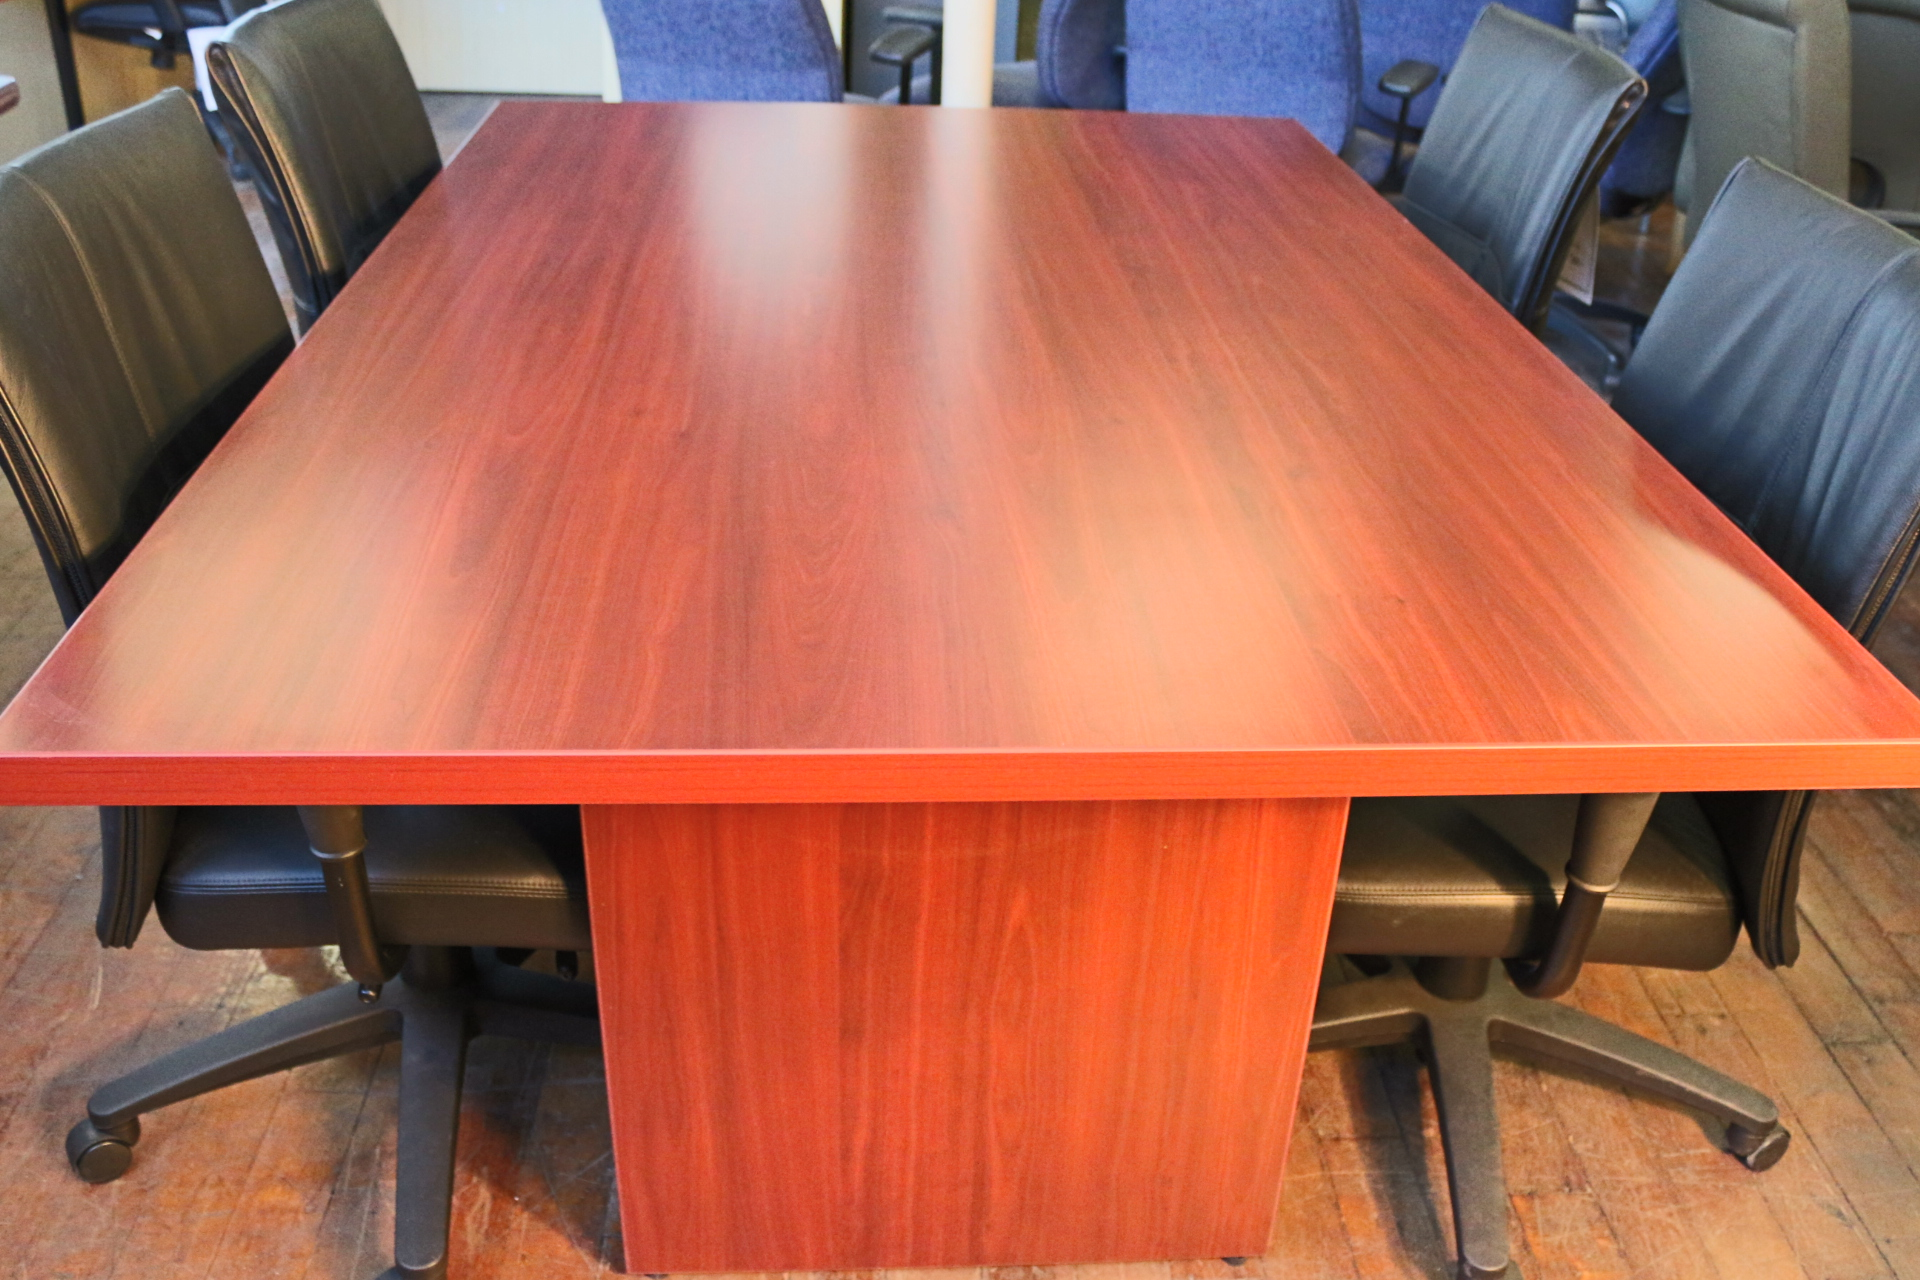 Peartree Baldwin American Cherry 6′ x 4′ Laminate Conference Table